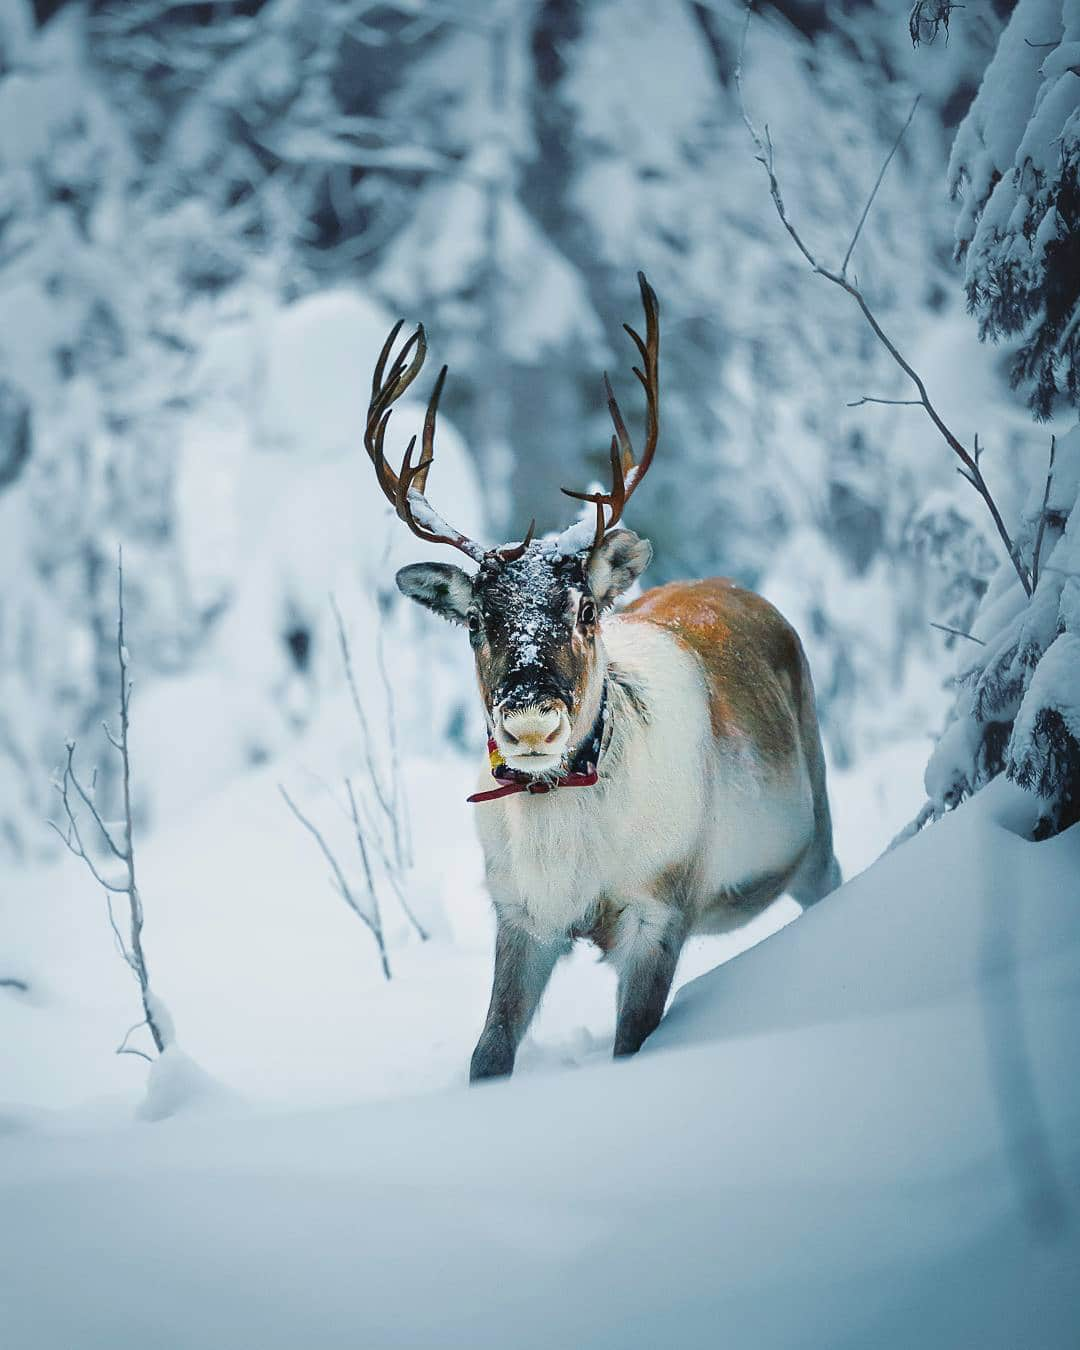 Photos of Forest Animals by Joachim Munter